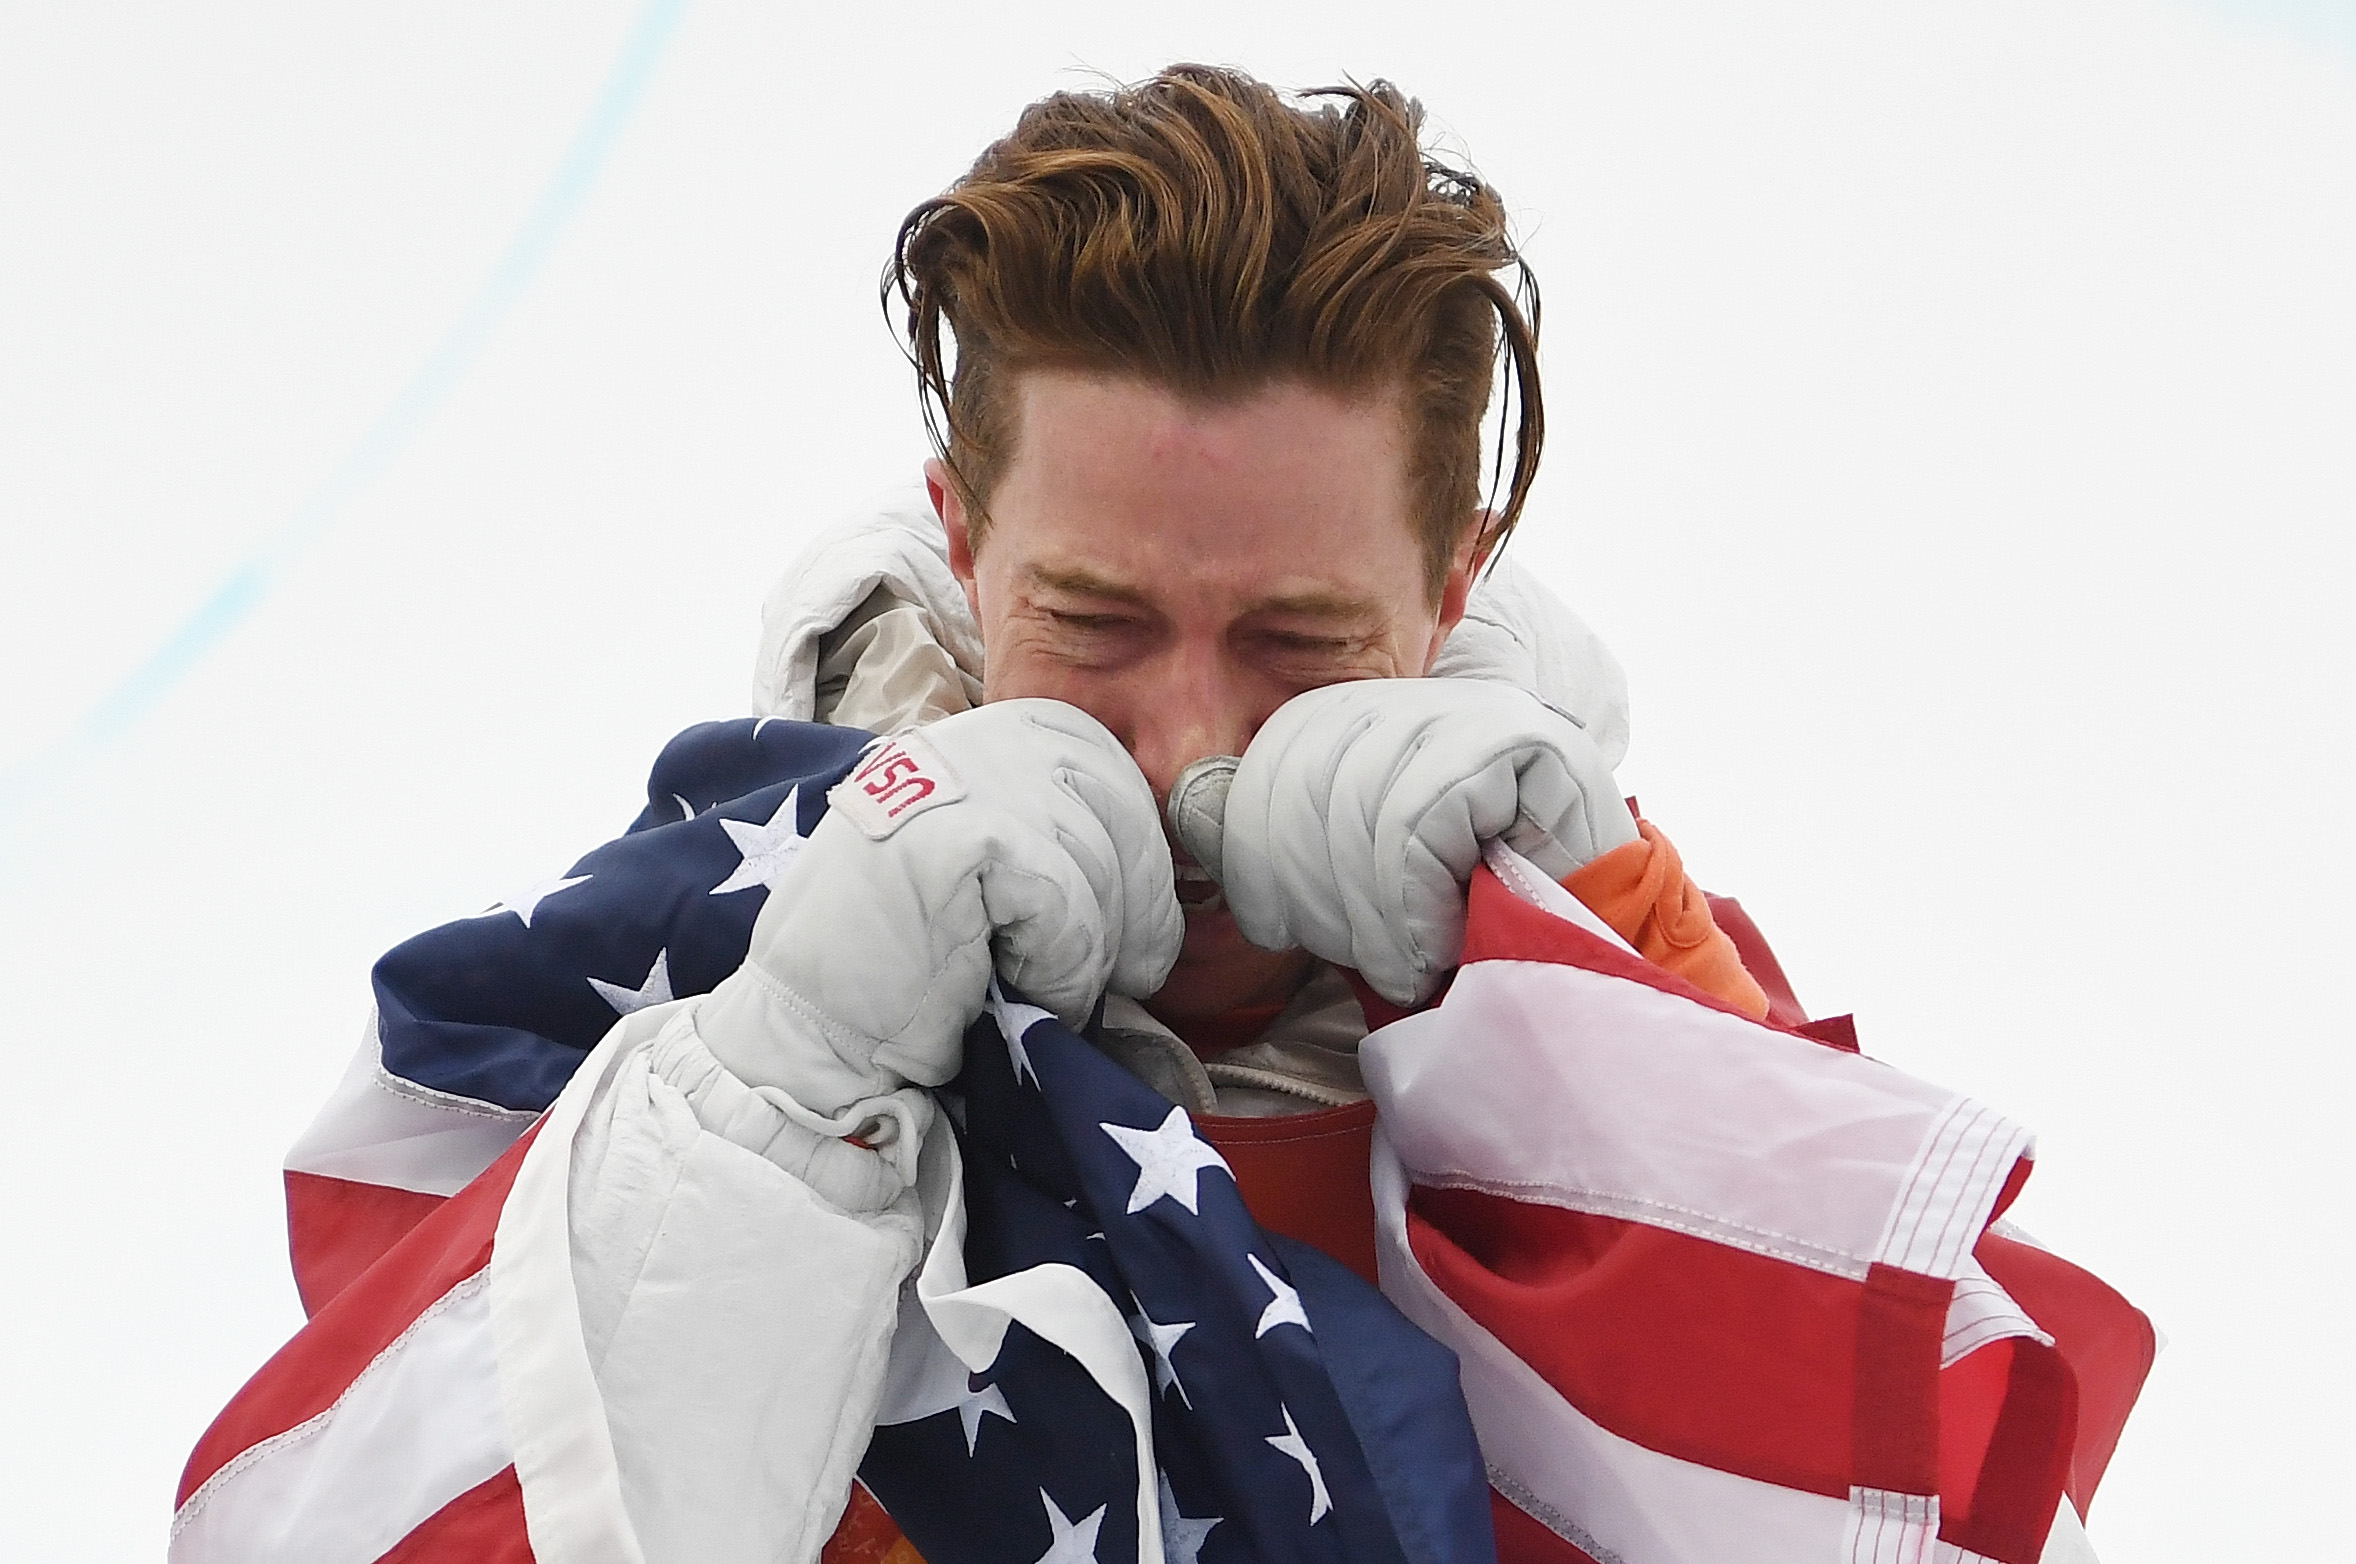 Shaun-White-Breaks-Down-In-Tears-As-He-Wins-Third-Gold-Medal-In-Mens-Halfpipe-At-2018-Winter-Olympics